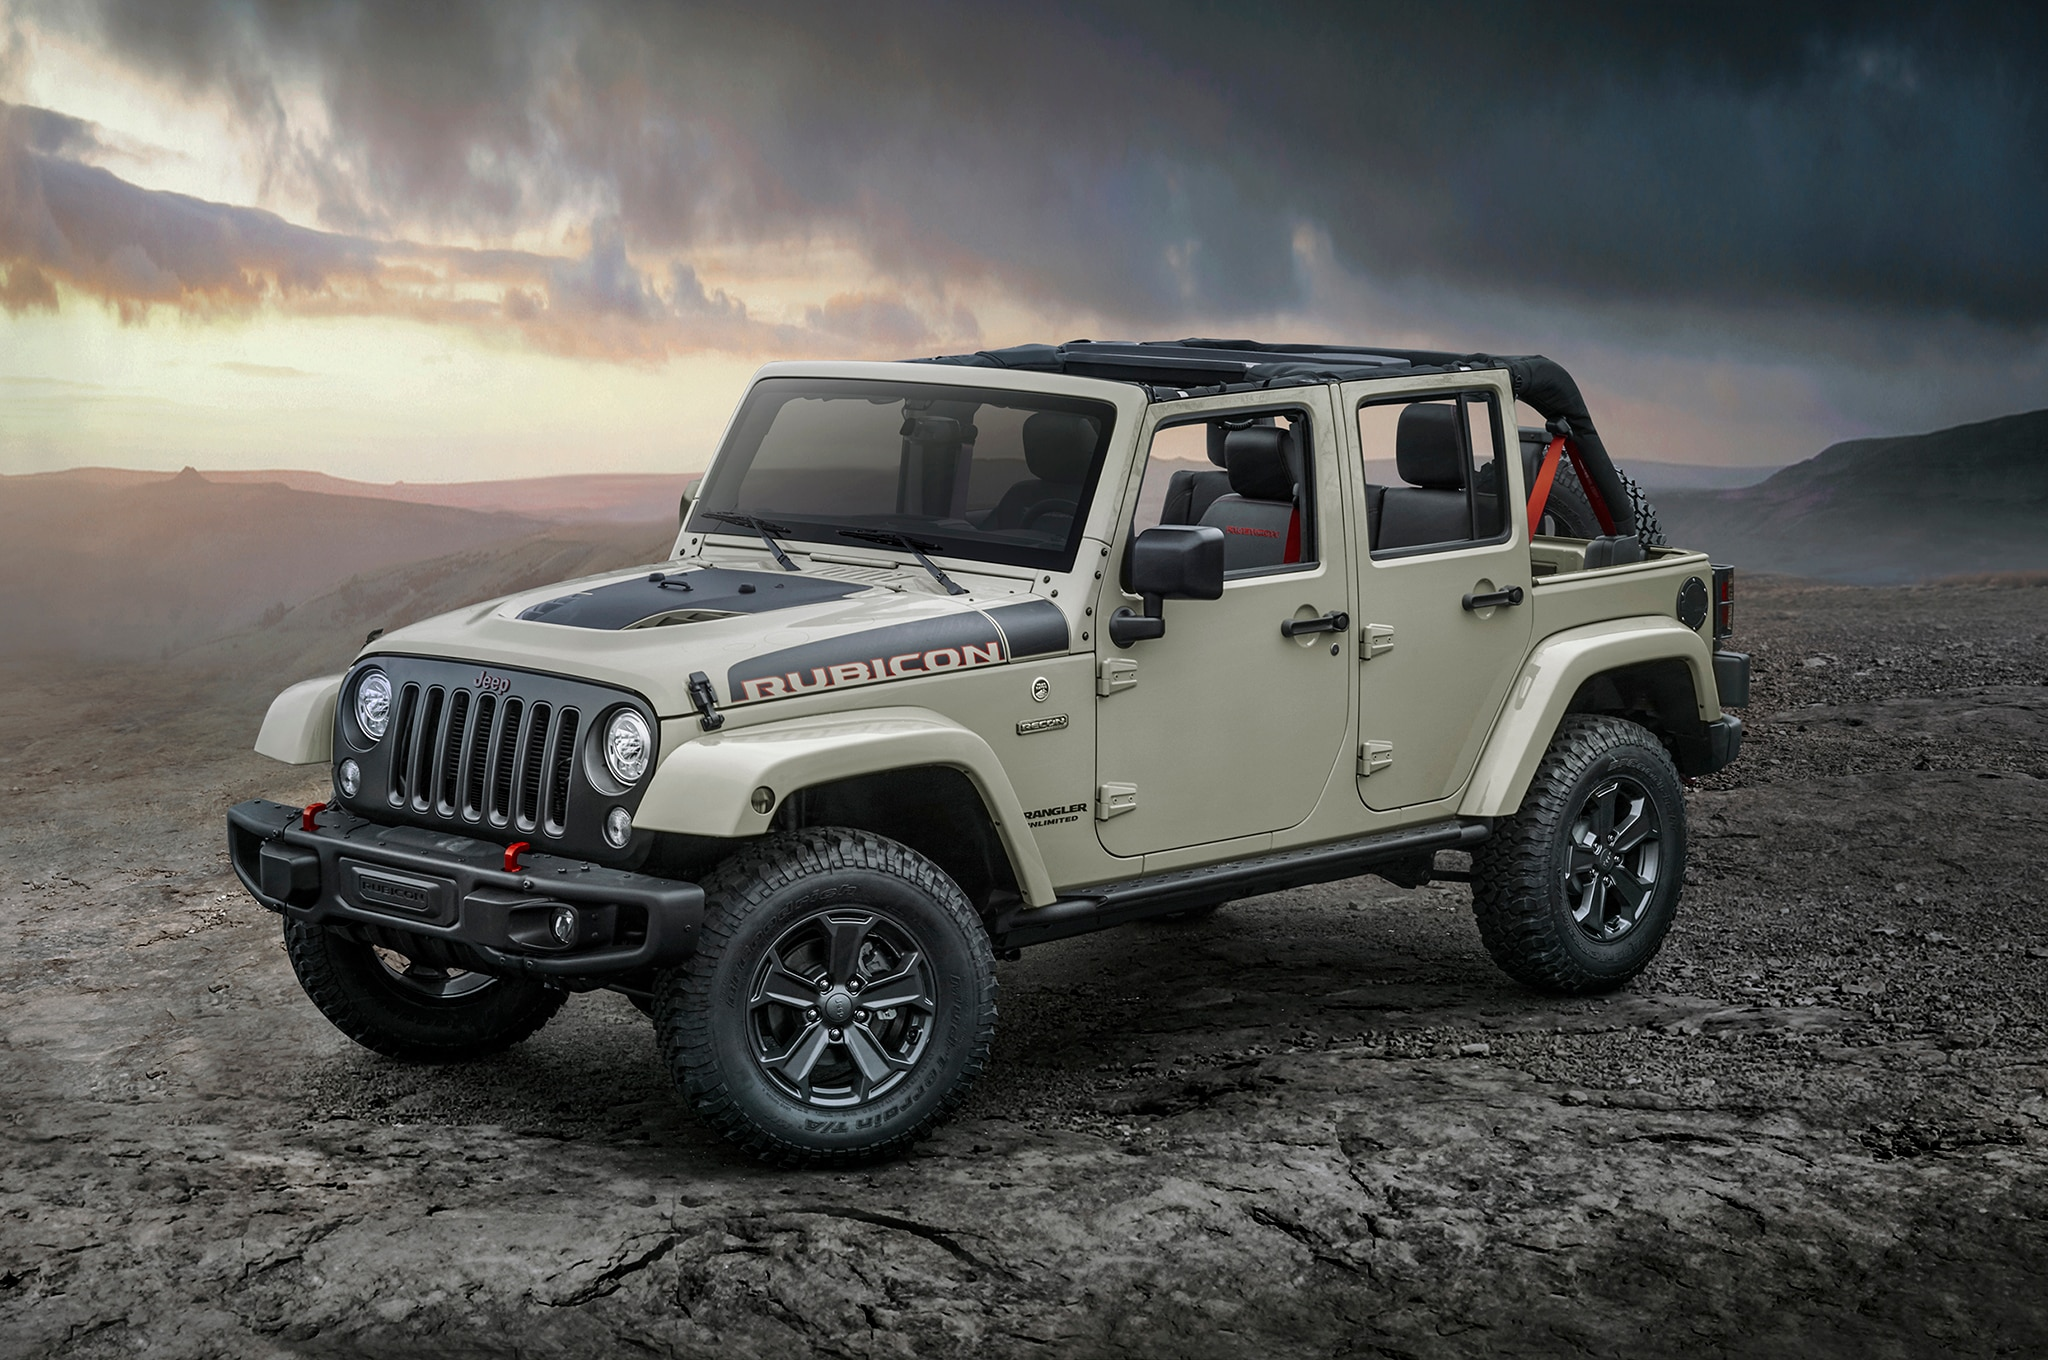 Wrangler 35 Inch Tires >> 2017 Jeep Wrangler Rubicon Recon is the Most Off-Road ...